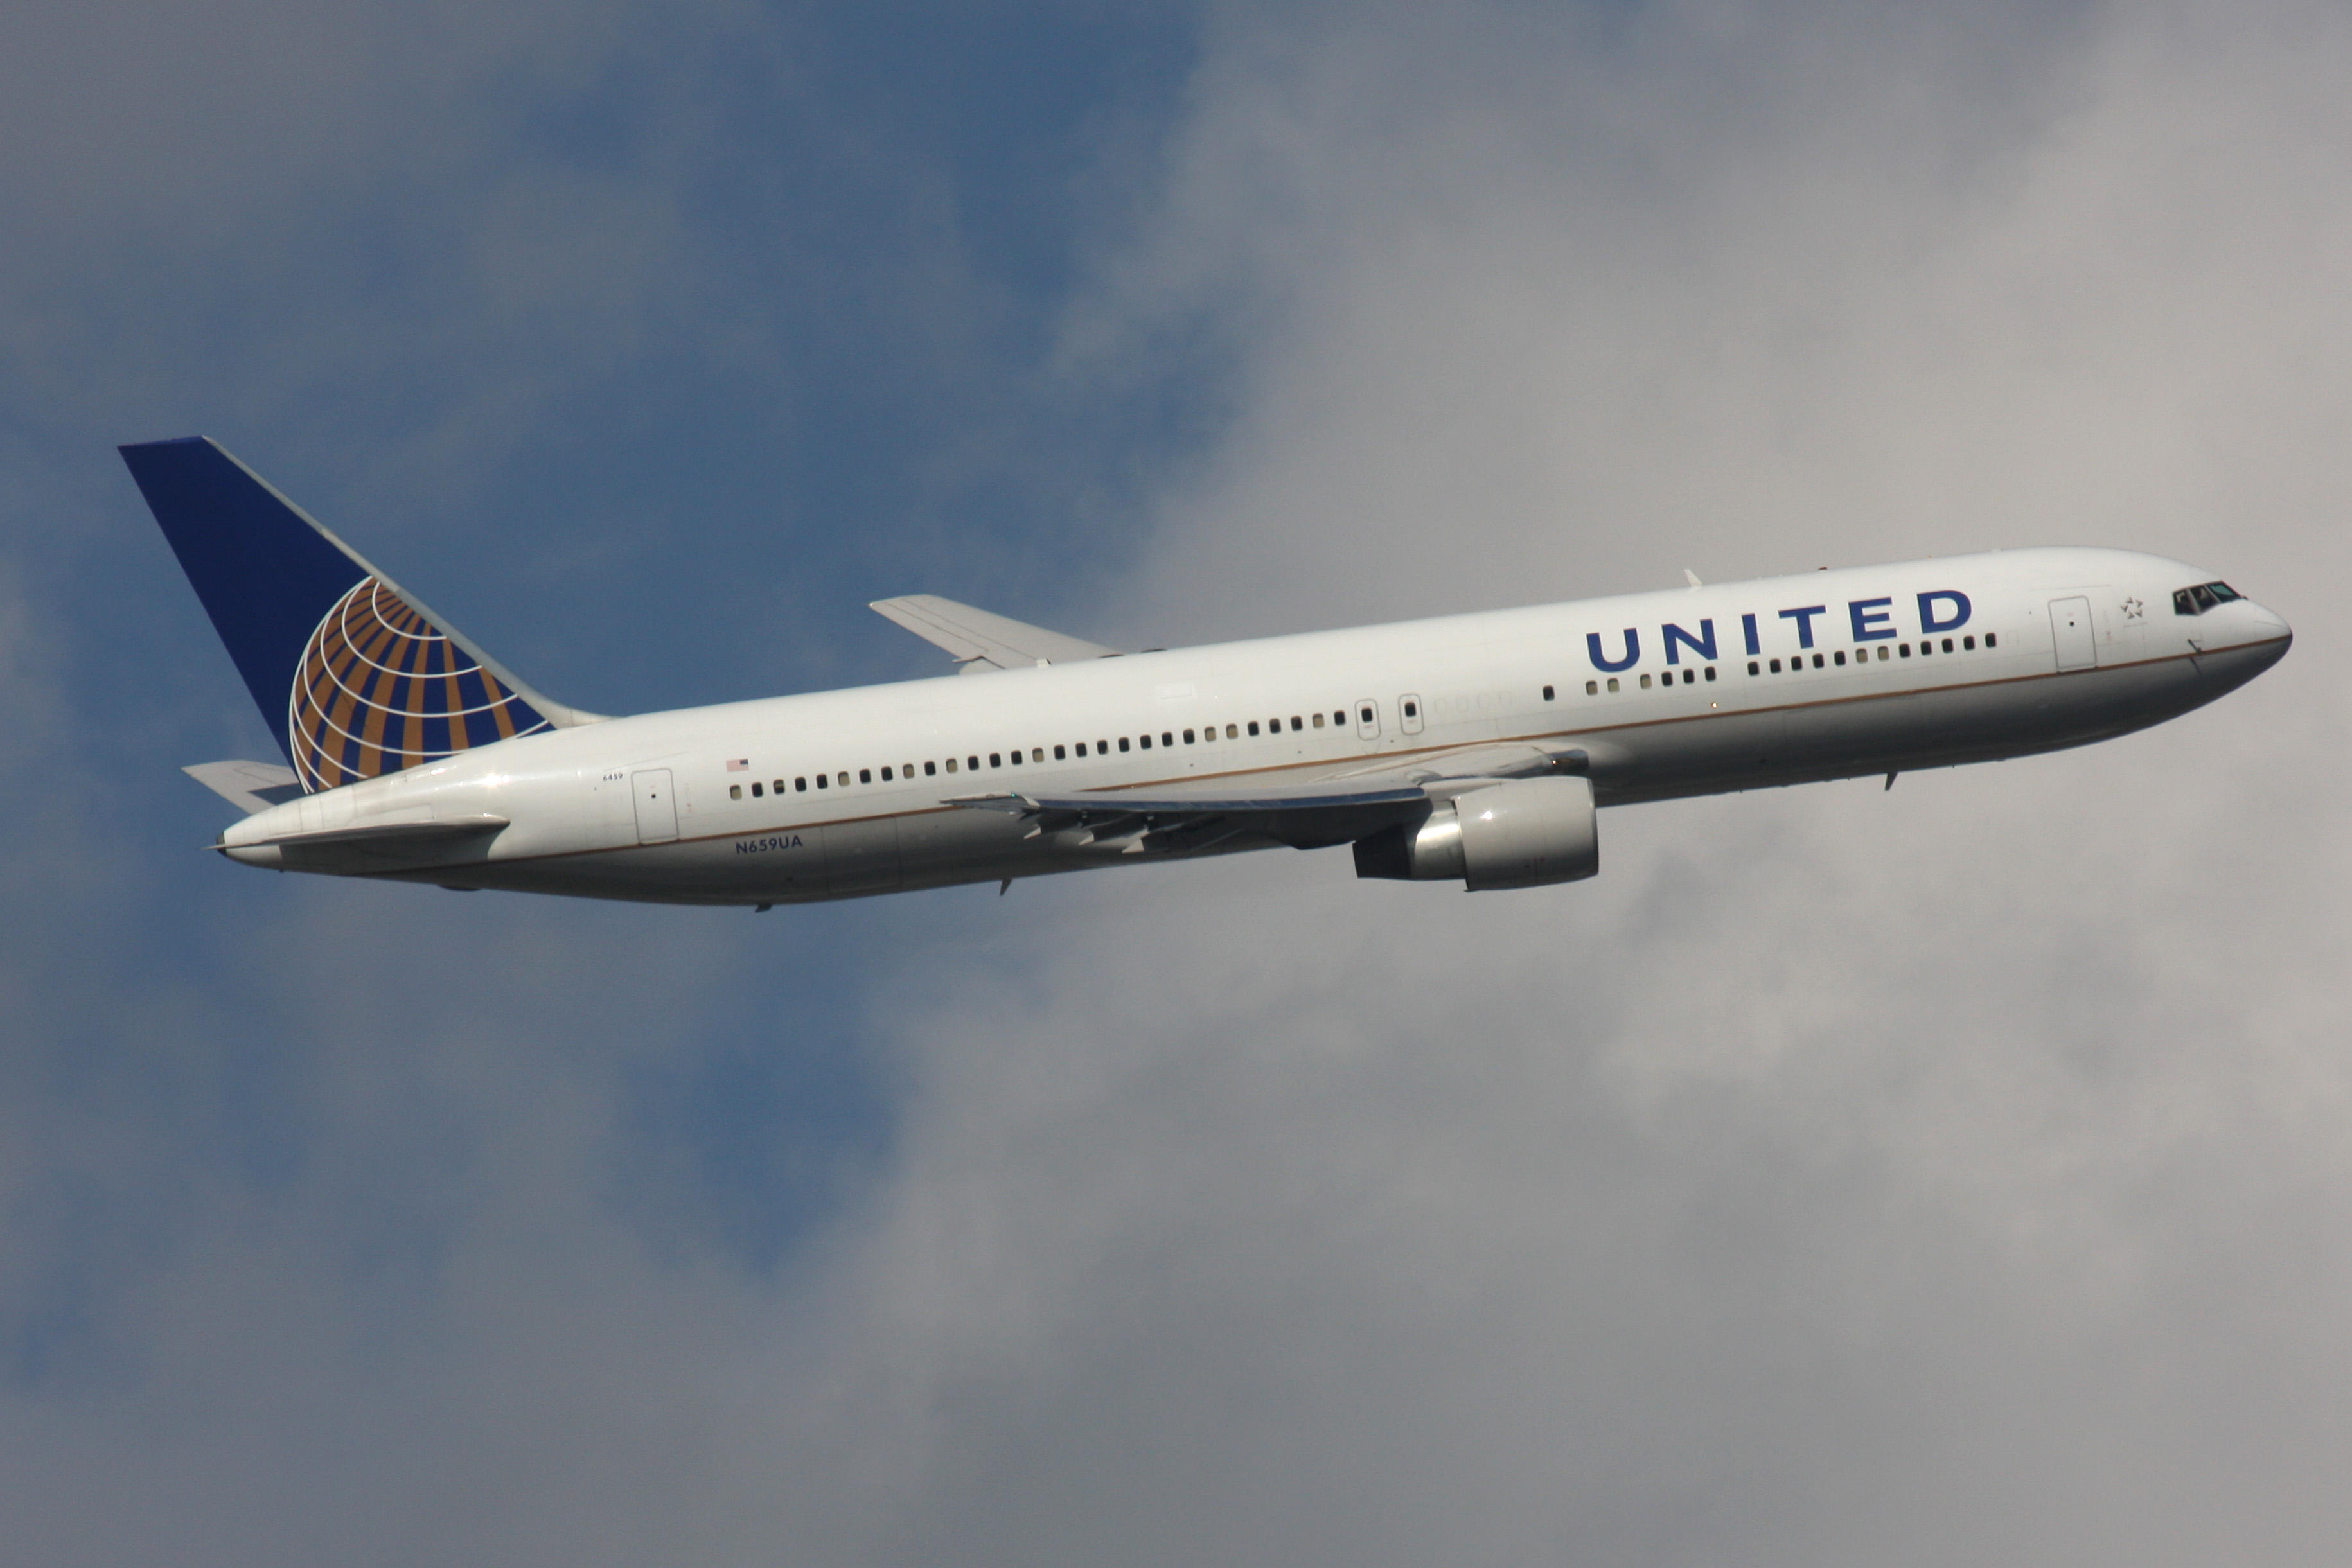 A United Airlines plane was diverted on Saturday after it was struck by severe turbulence (Picture: Alamy)